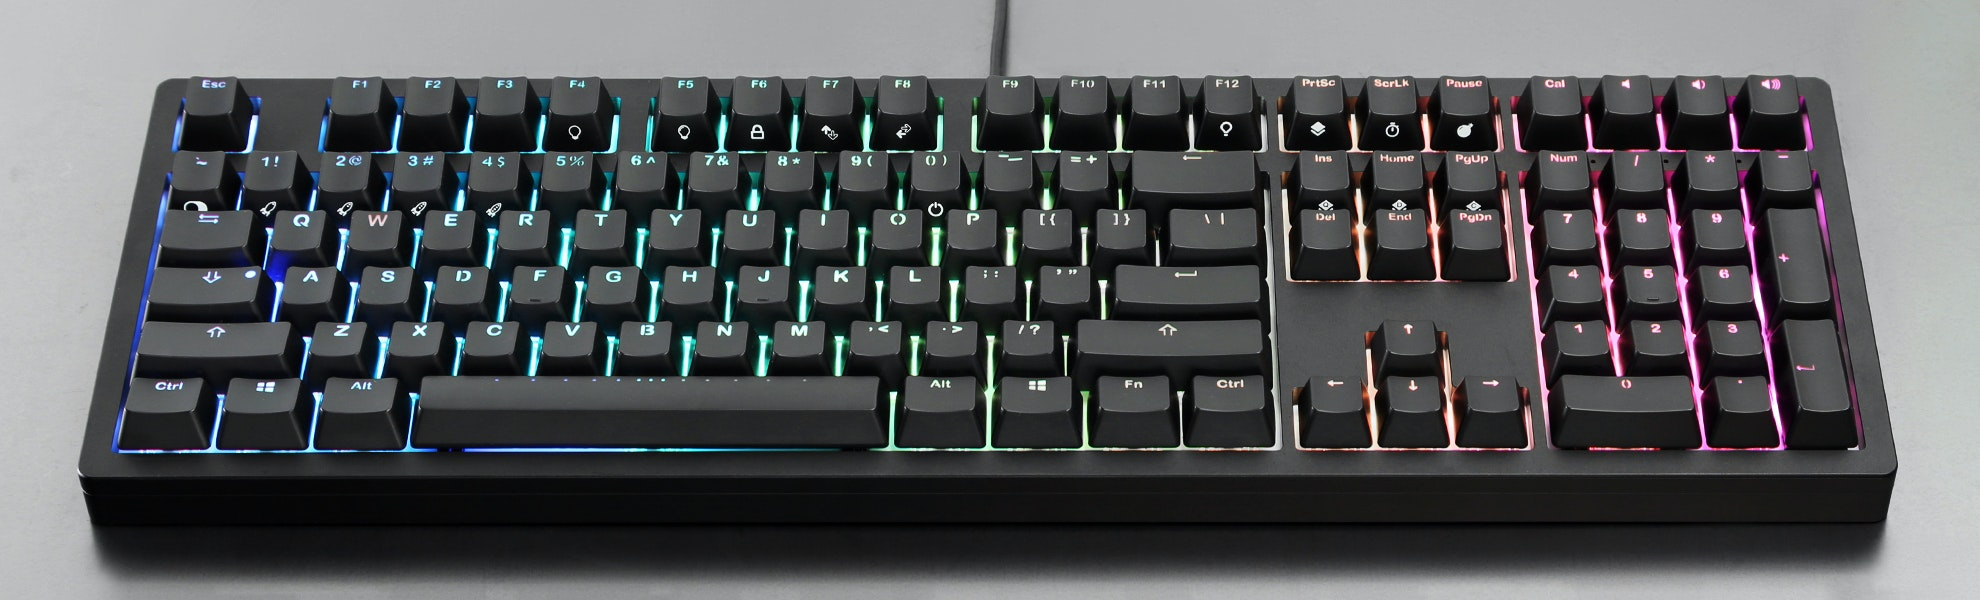 IKBC Fullsize CNC Aluminum RGB Mechanical Keyboard